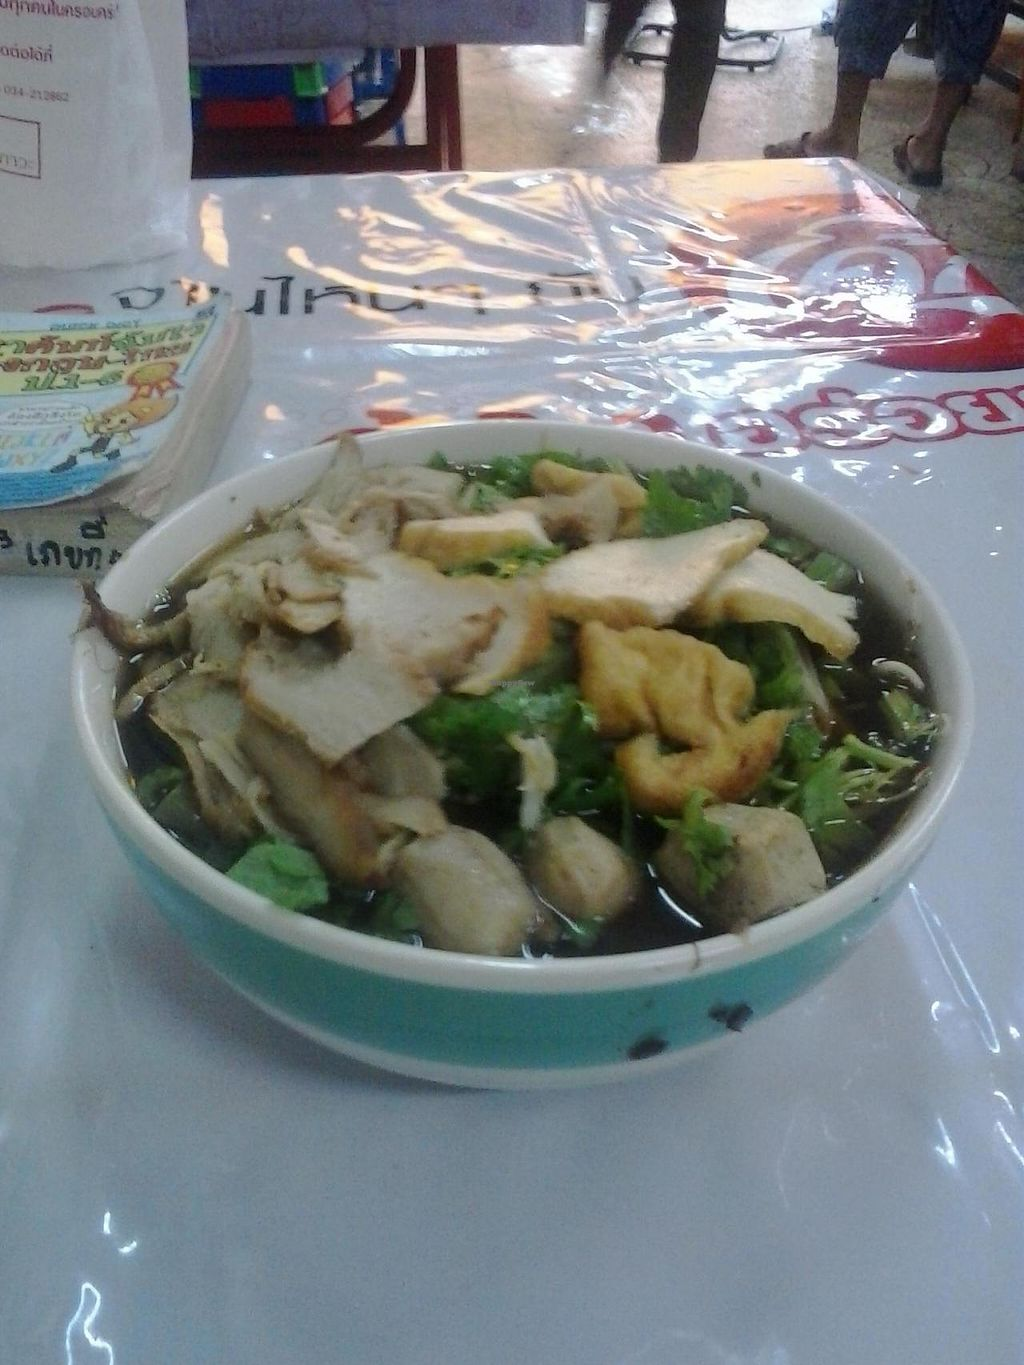 """Photo of Fine Juicy Kitchen  by <a href=""""/members/profile/Chur%20Bro"""">Chur Bro</a> <br/>Cinnamon soup <br/> August 14, 2014  - <a href='/contact/abuse/image/50300/76988'>Report</a>"""